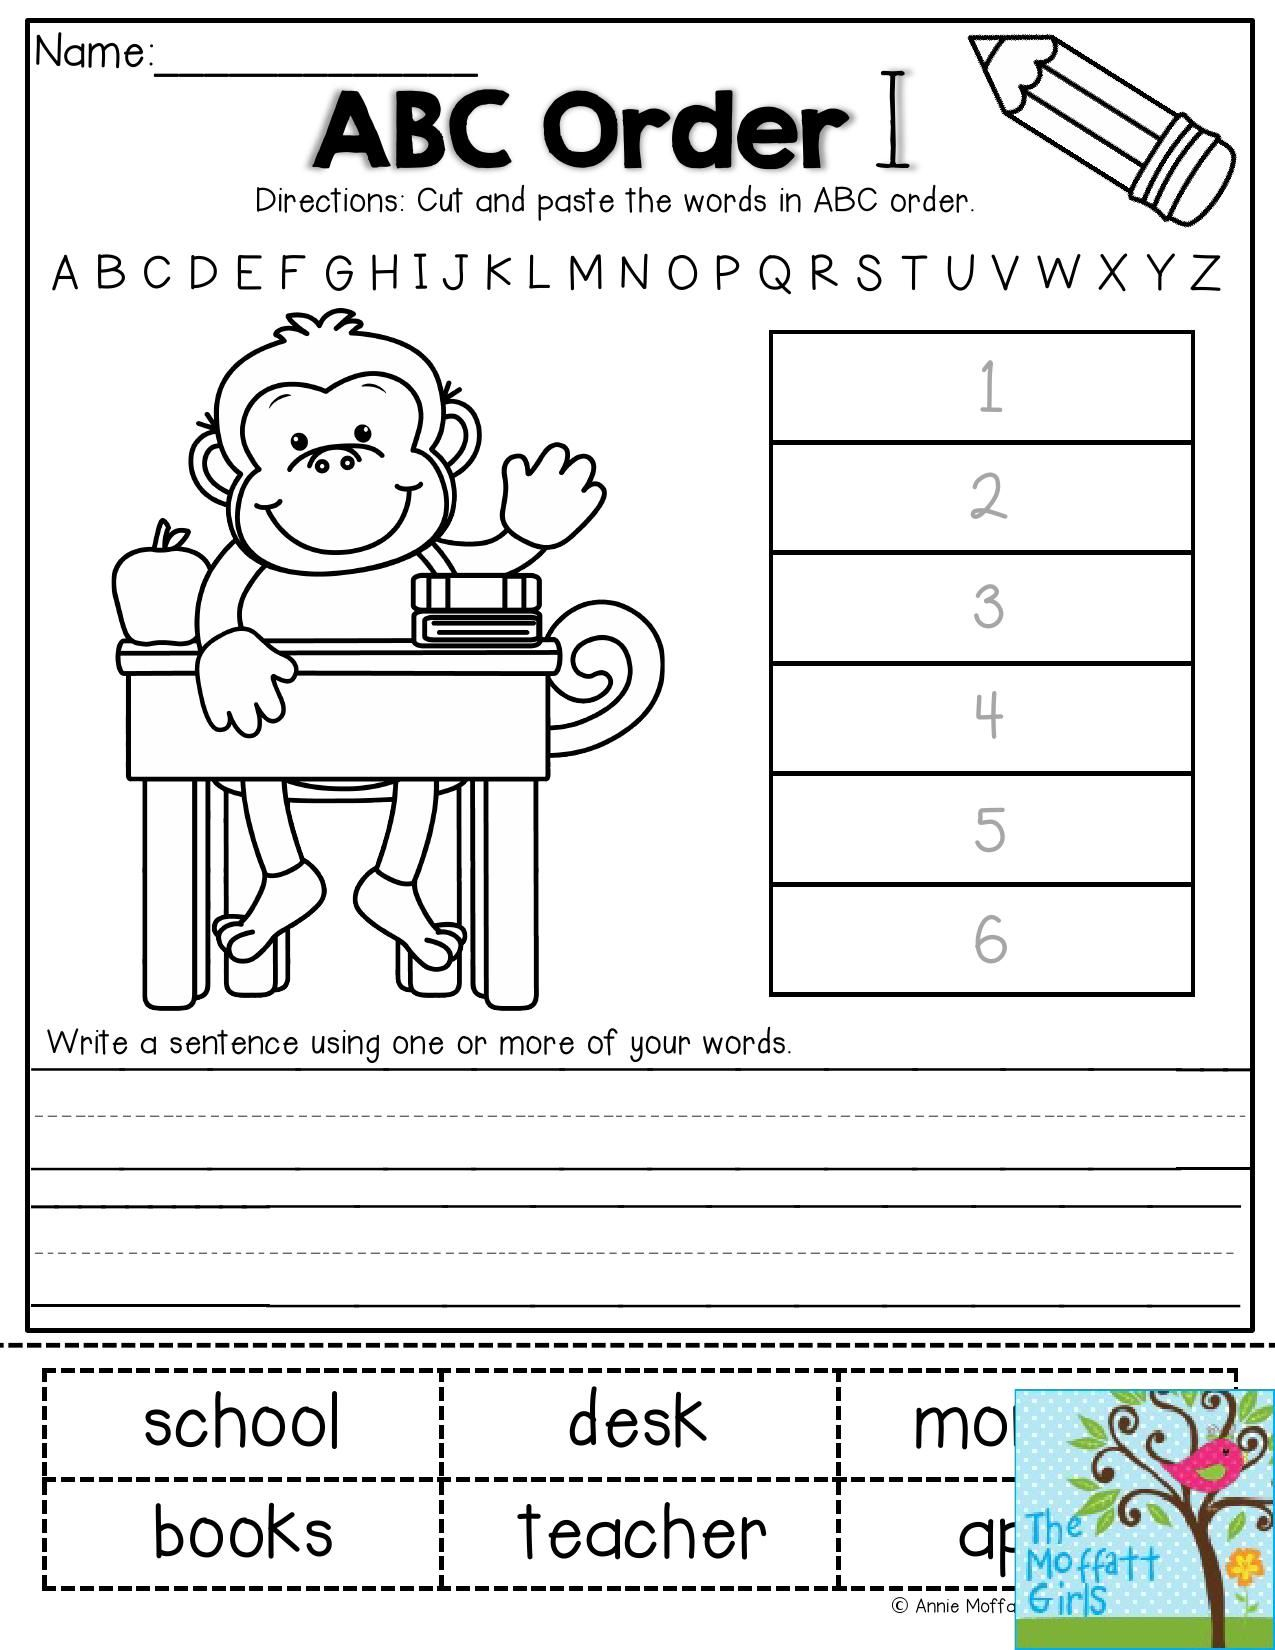 Alphabet Cutting Worksheets | Printable Worksheets And inside Alphabet Cutting Worksheets